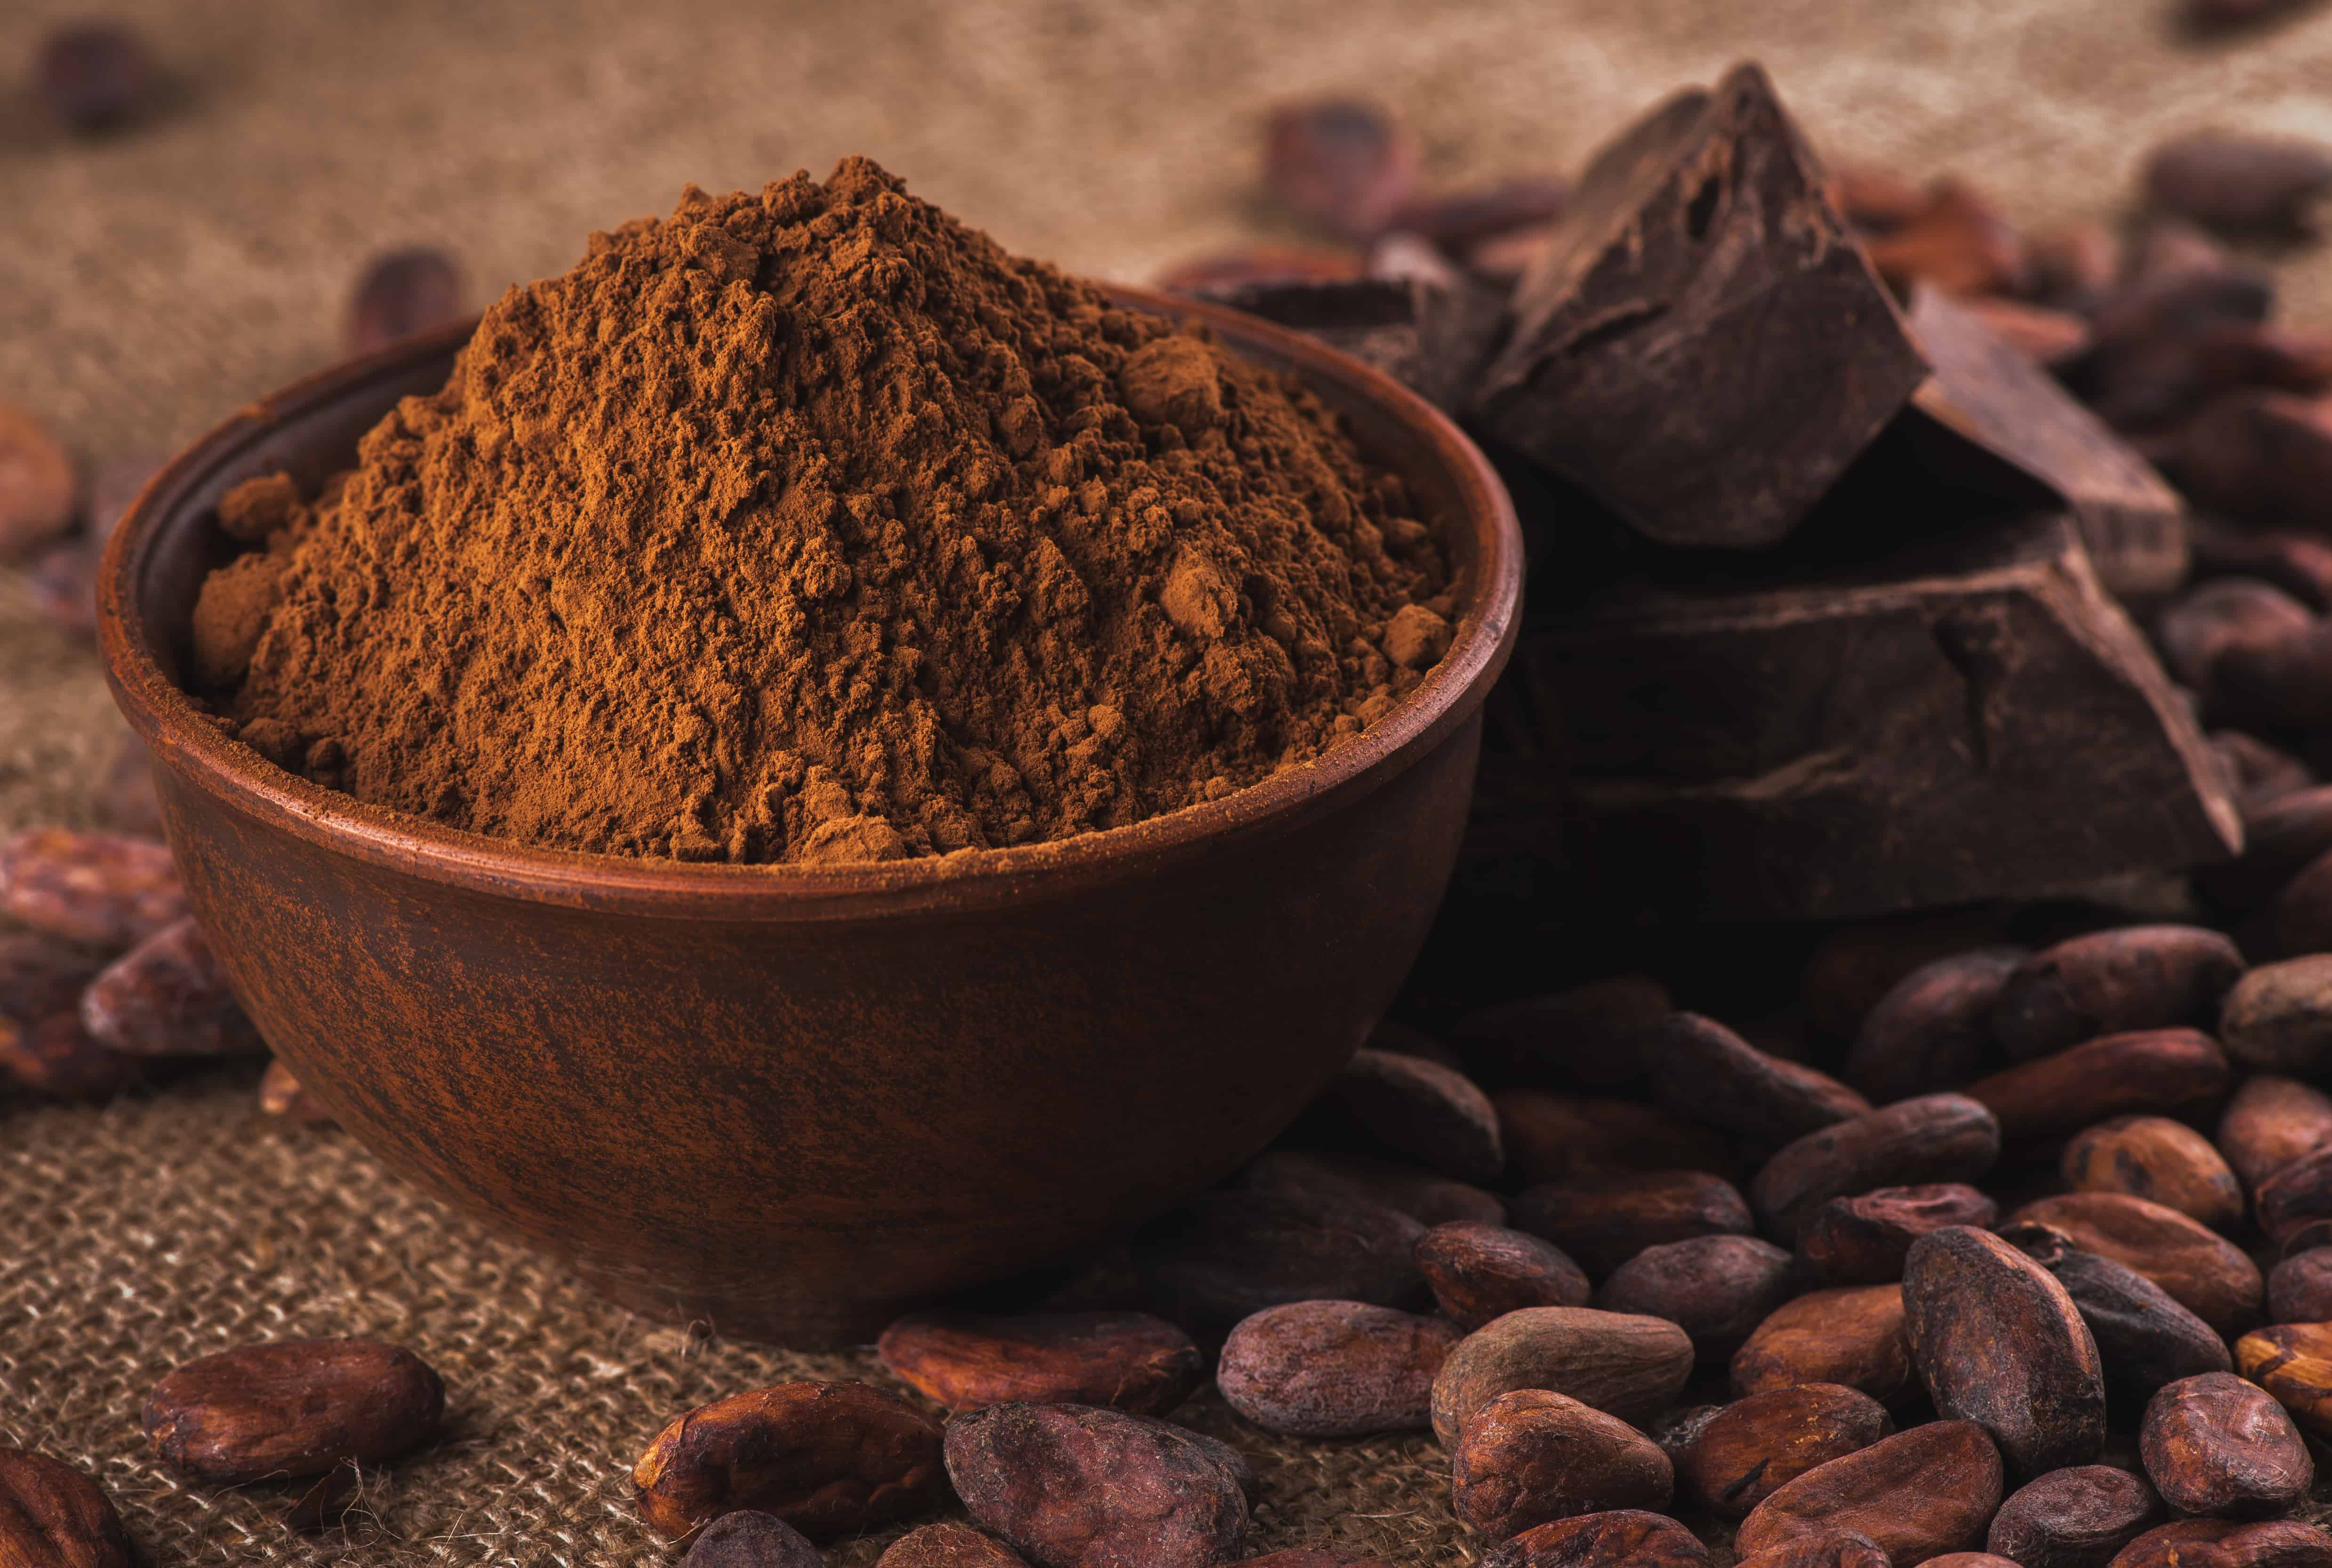 crude dark cocoa powder in a brown ceramic bowl, raw cocoa beans in the peel and raw chocolate on sacking close up, ingredients for preparing chocolate and sweets